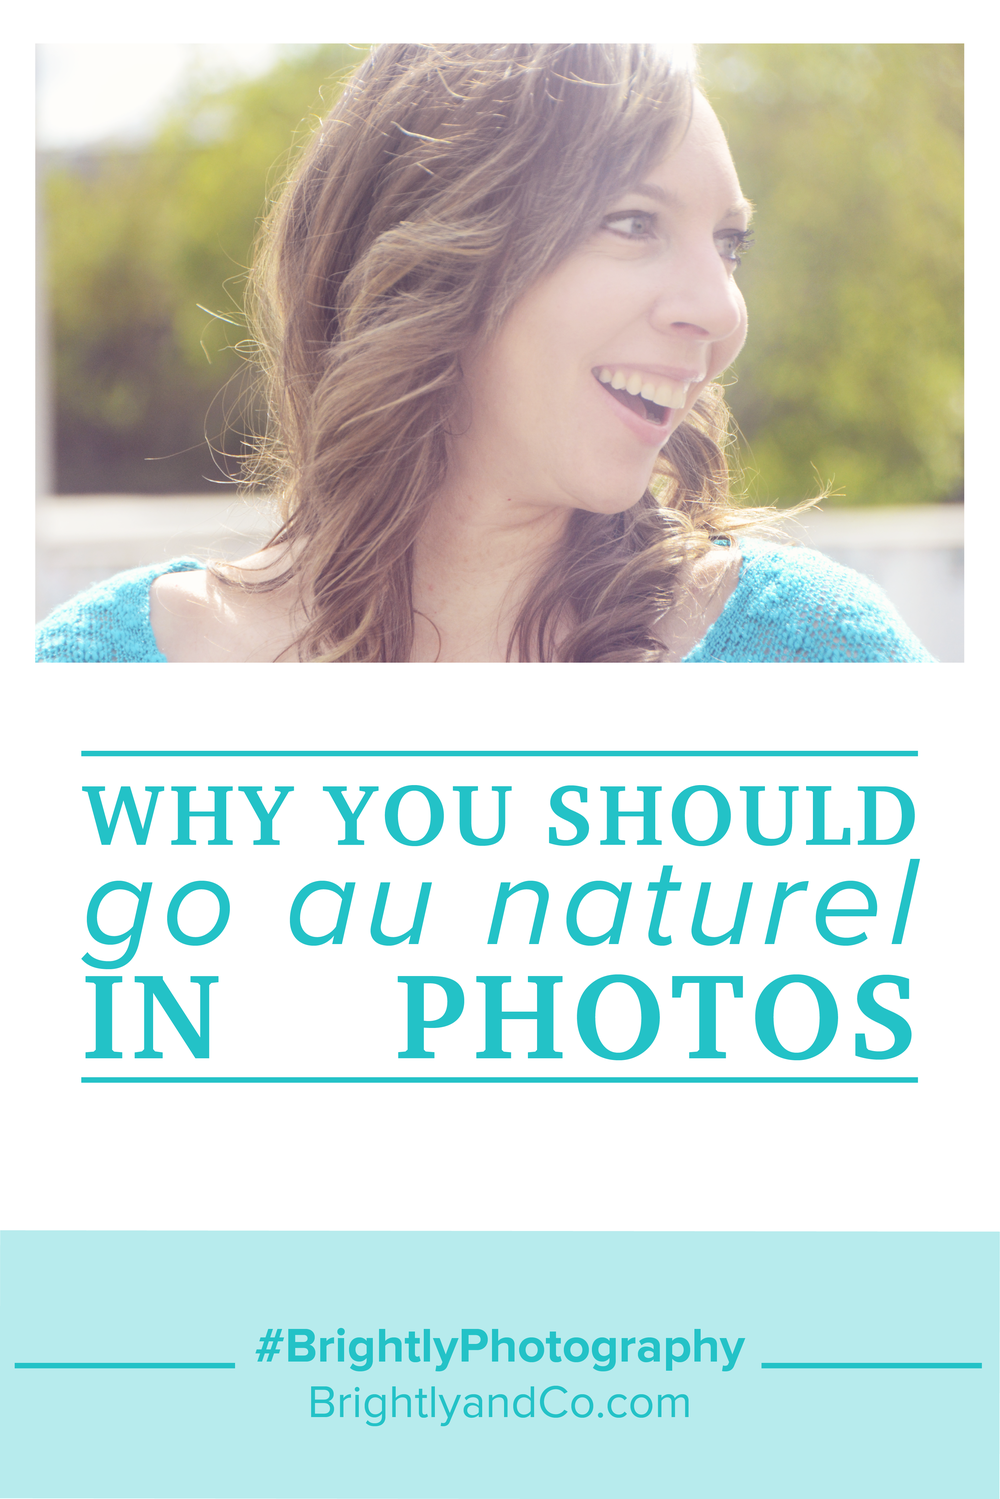 Why You Should Use a Natural Light Photographer - Brightly & Co